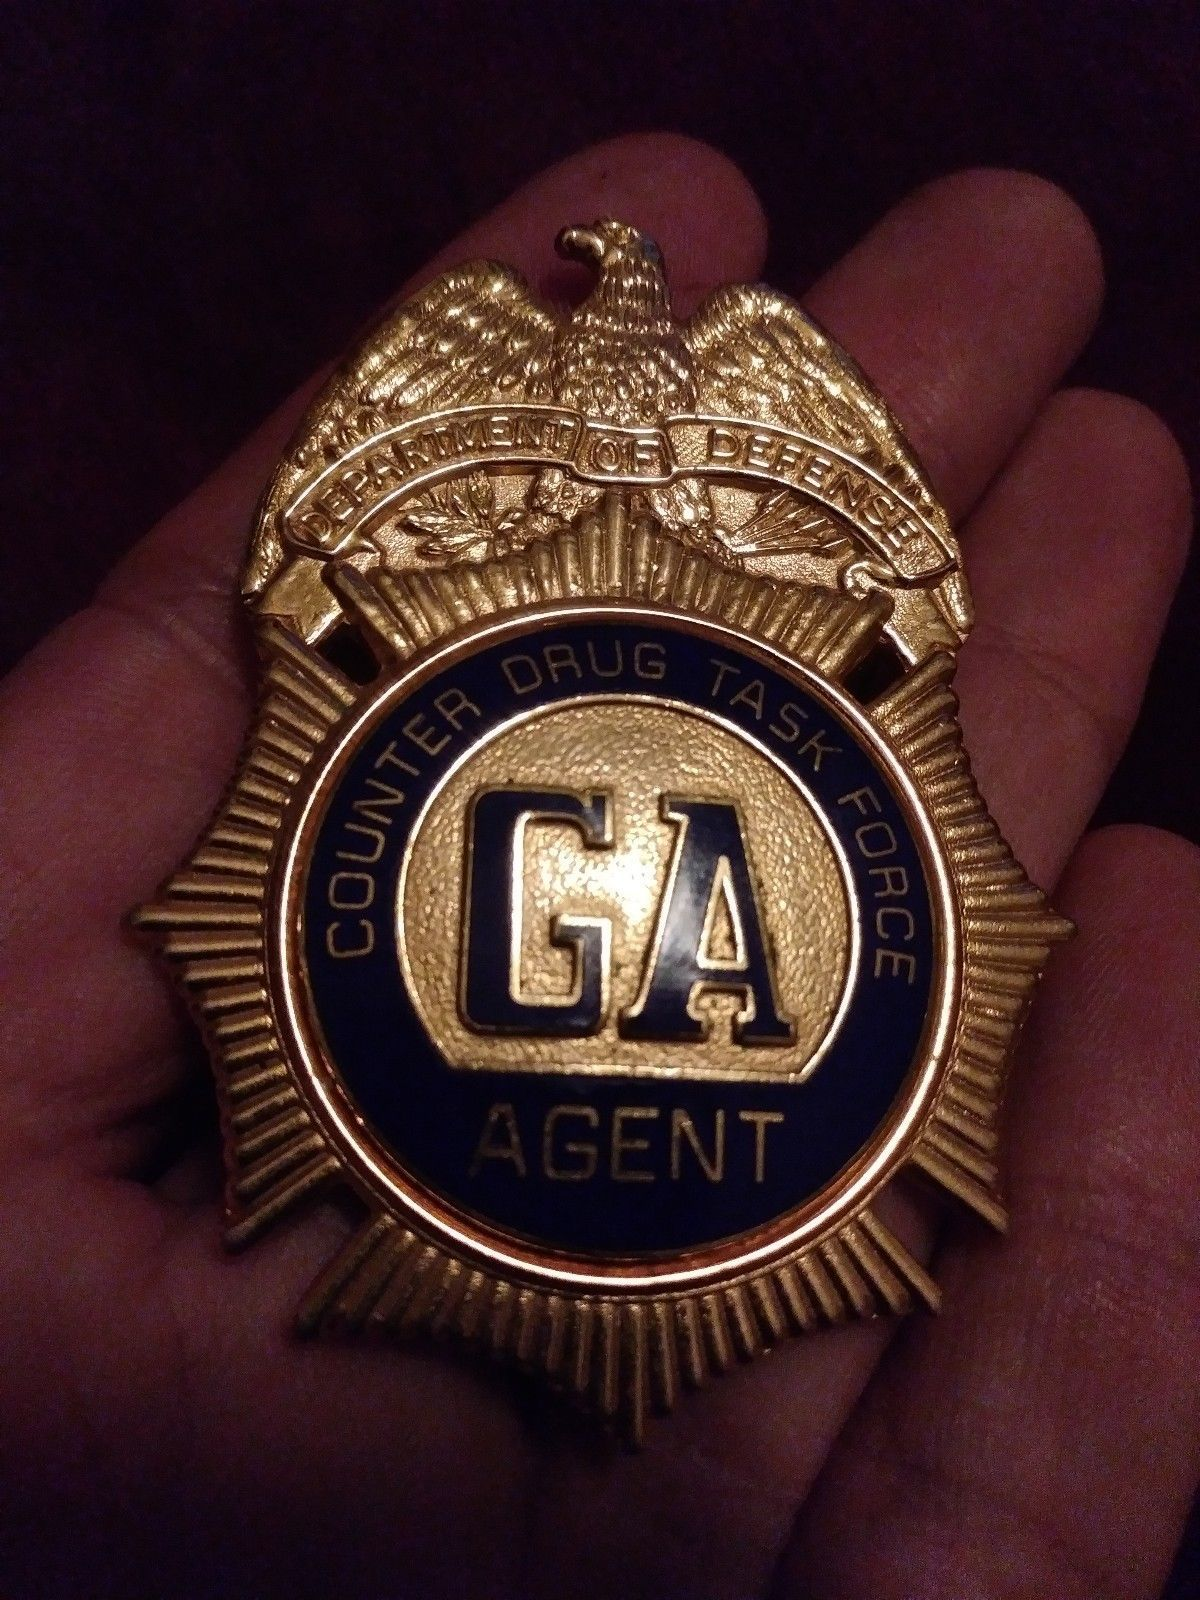 Agent, Counter Drug Task Force Georgia, Department of